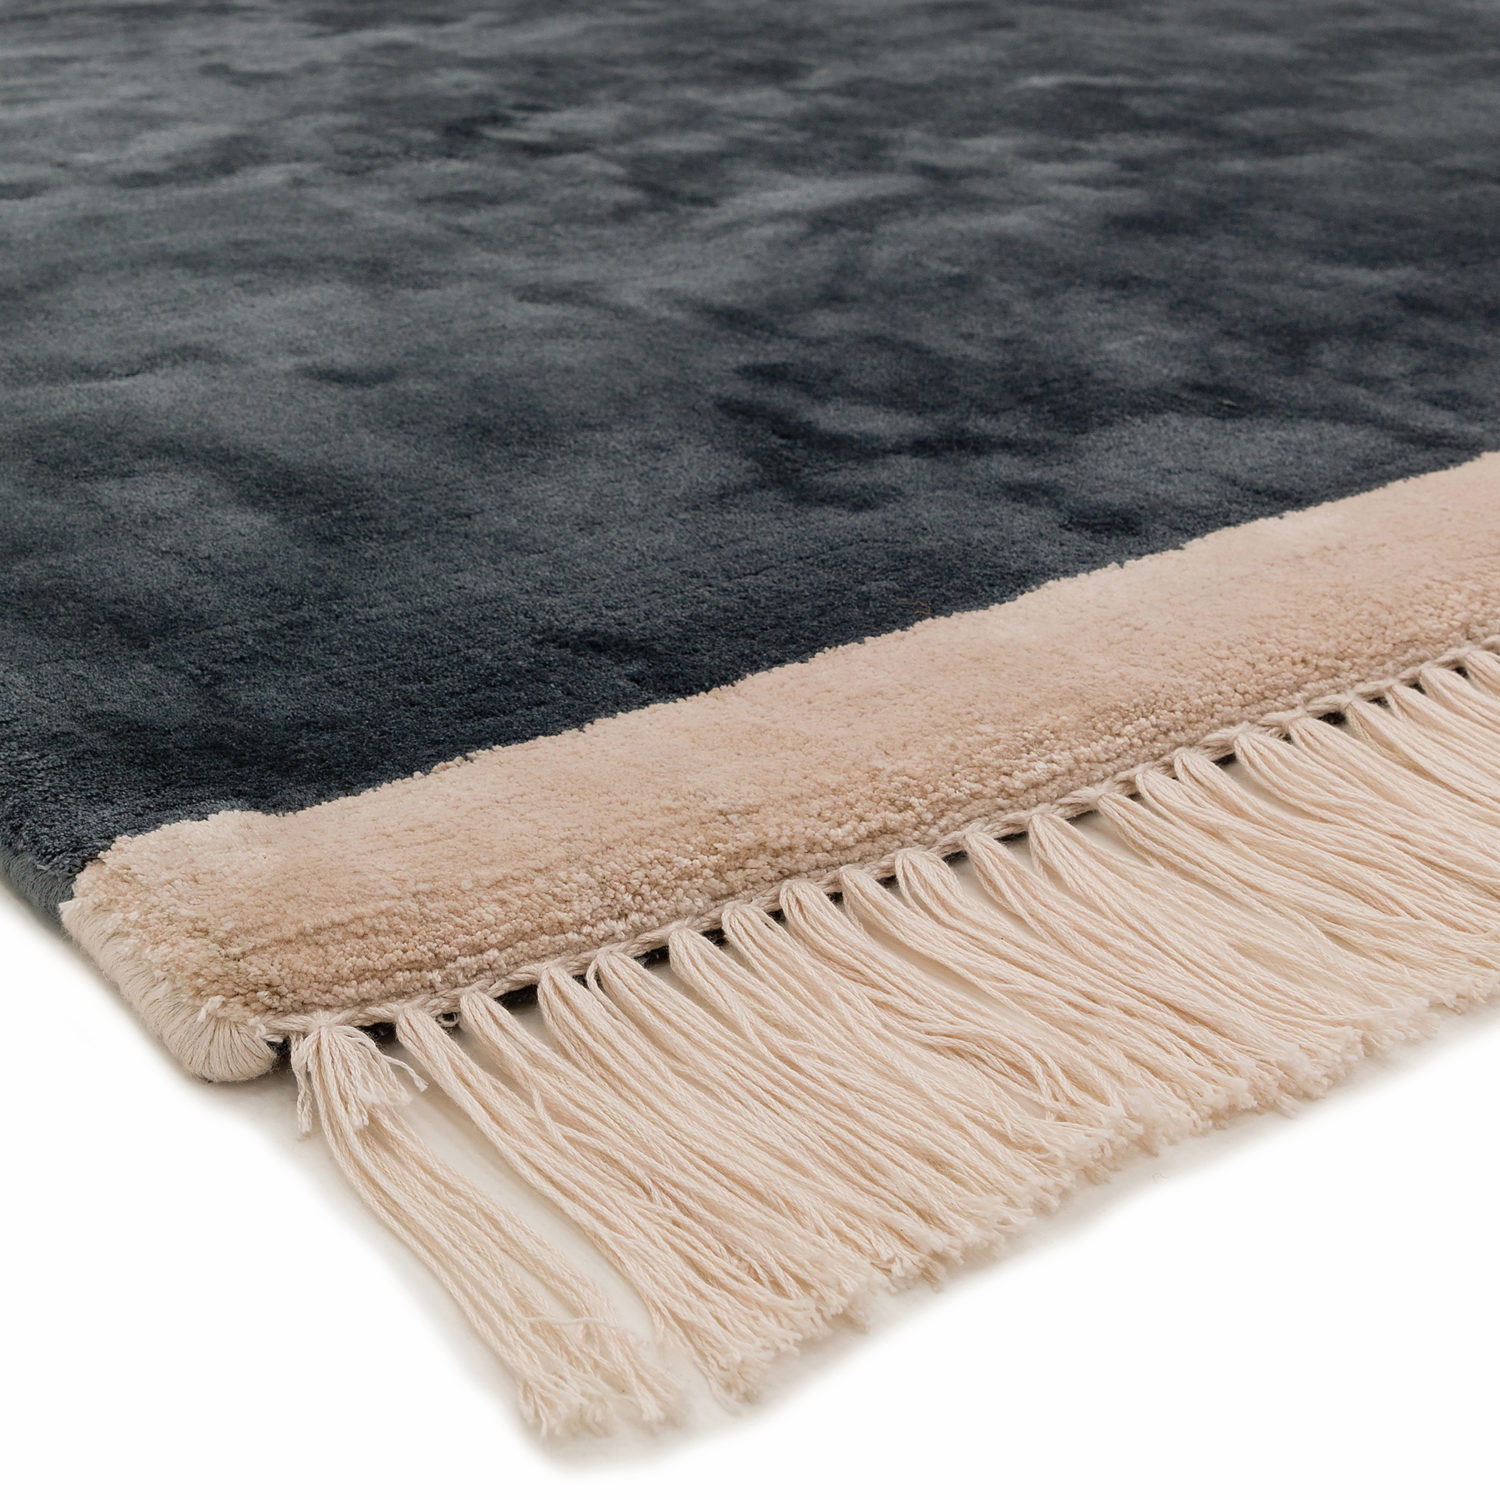 Decorative viscose rug with contrasting fringed borders